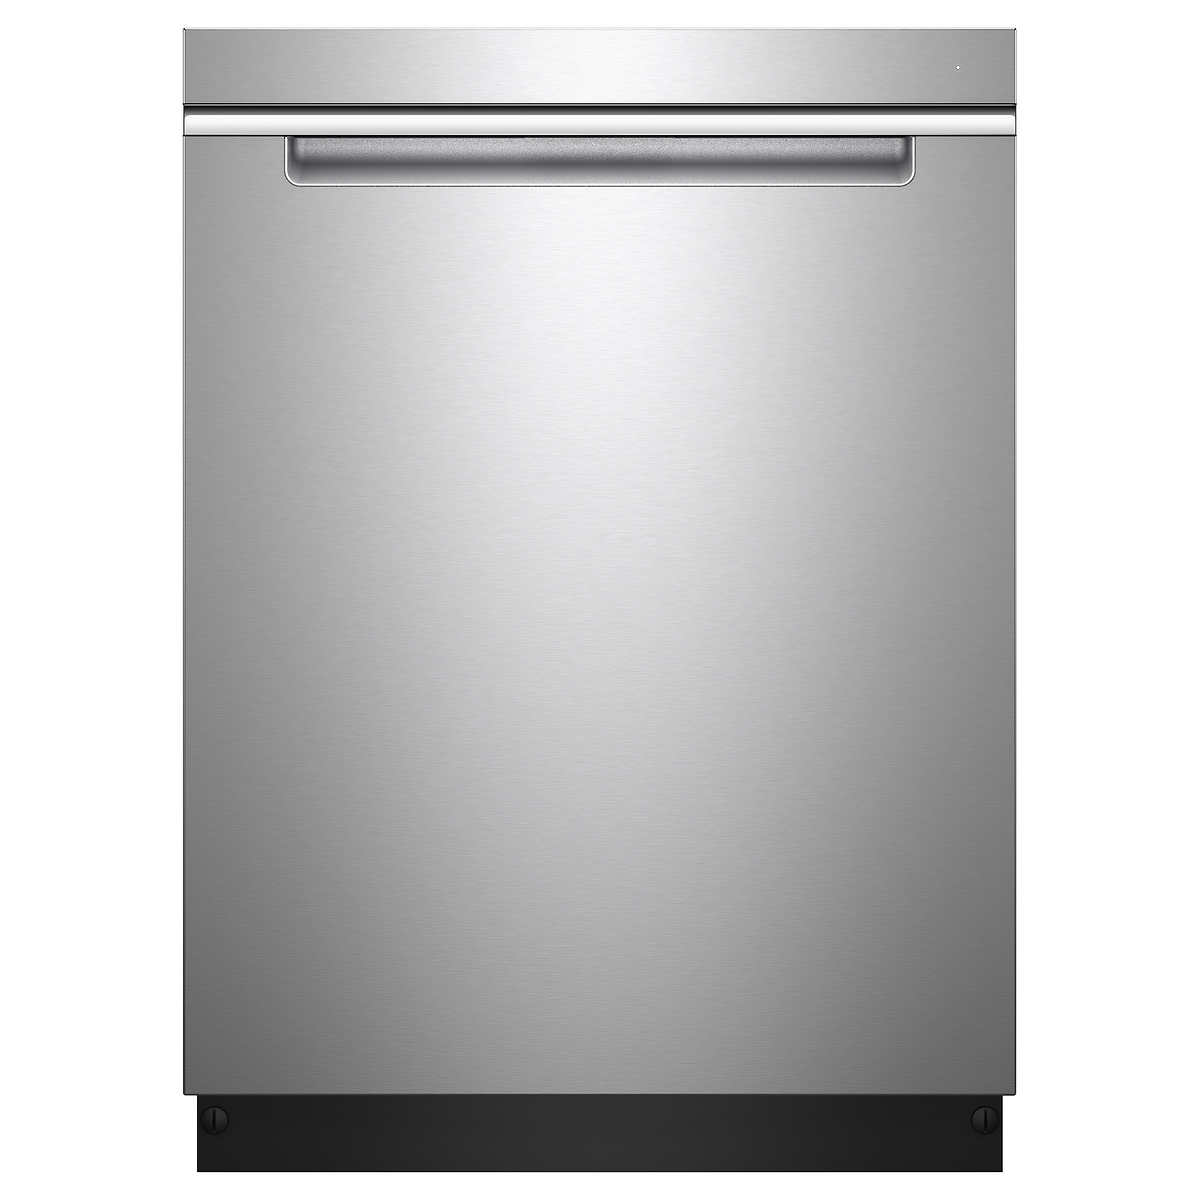 Whirlpool Top Control Dishwasher with Stainless Steel Tub